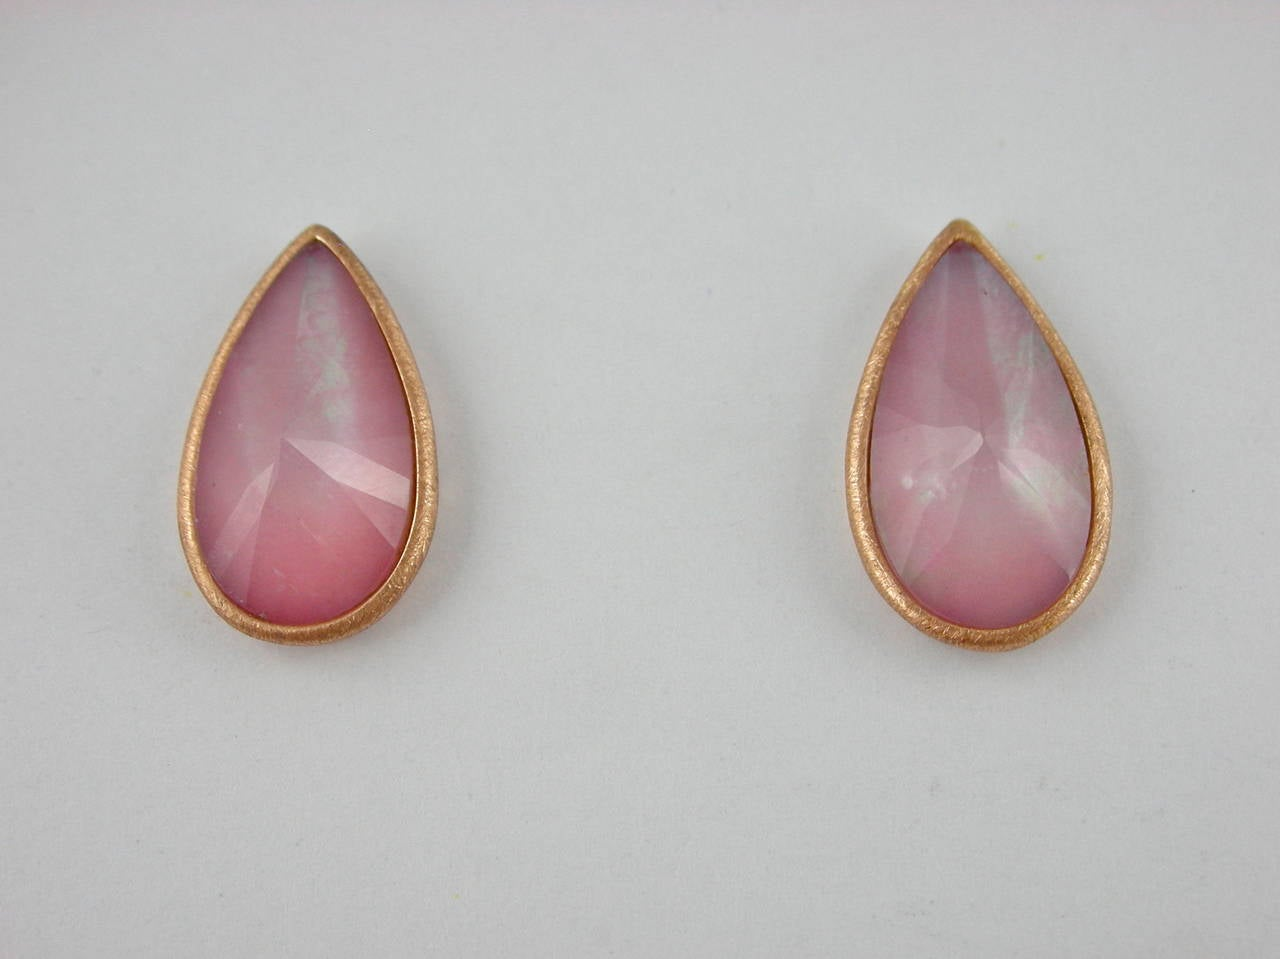 Jona design collection, hand crafted in Italy, 18 Karat rose gold stud earrings set with a crazy cut Quartz over Pink Opal and Mother of Pearl, weighing 5.6 carats. Clips can be mounted upon request. All Jona jewelry is new and has never been